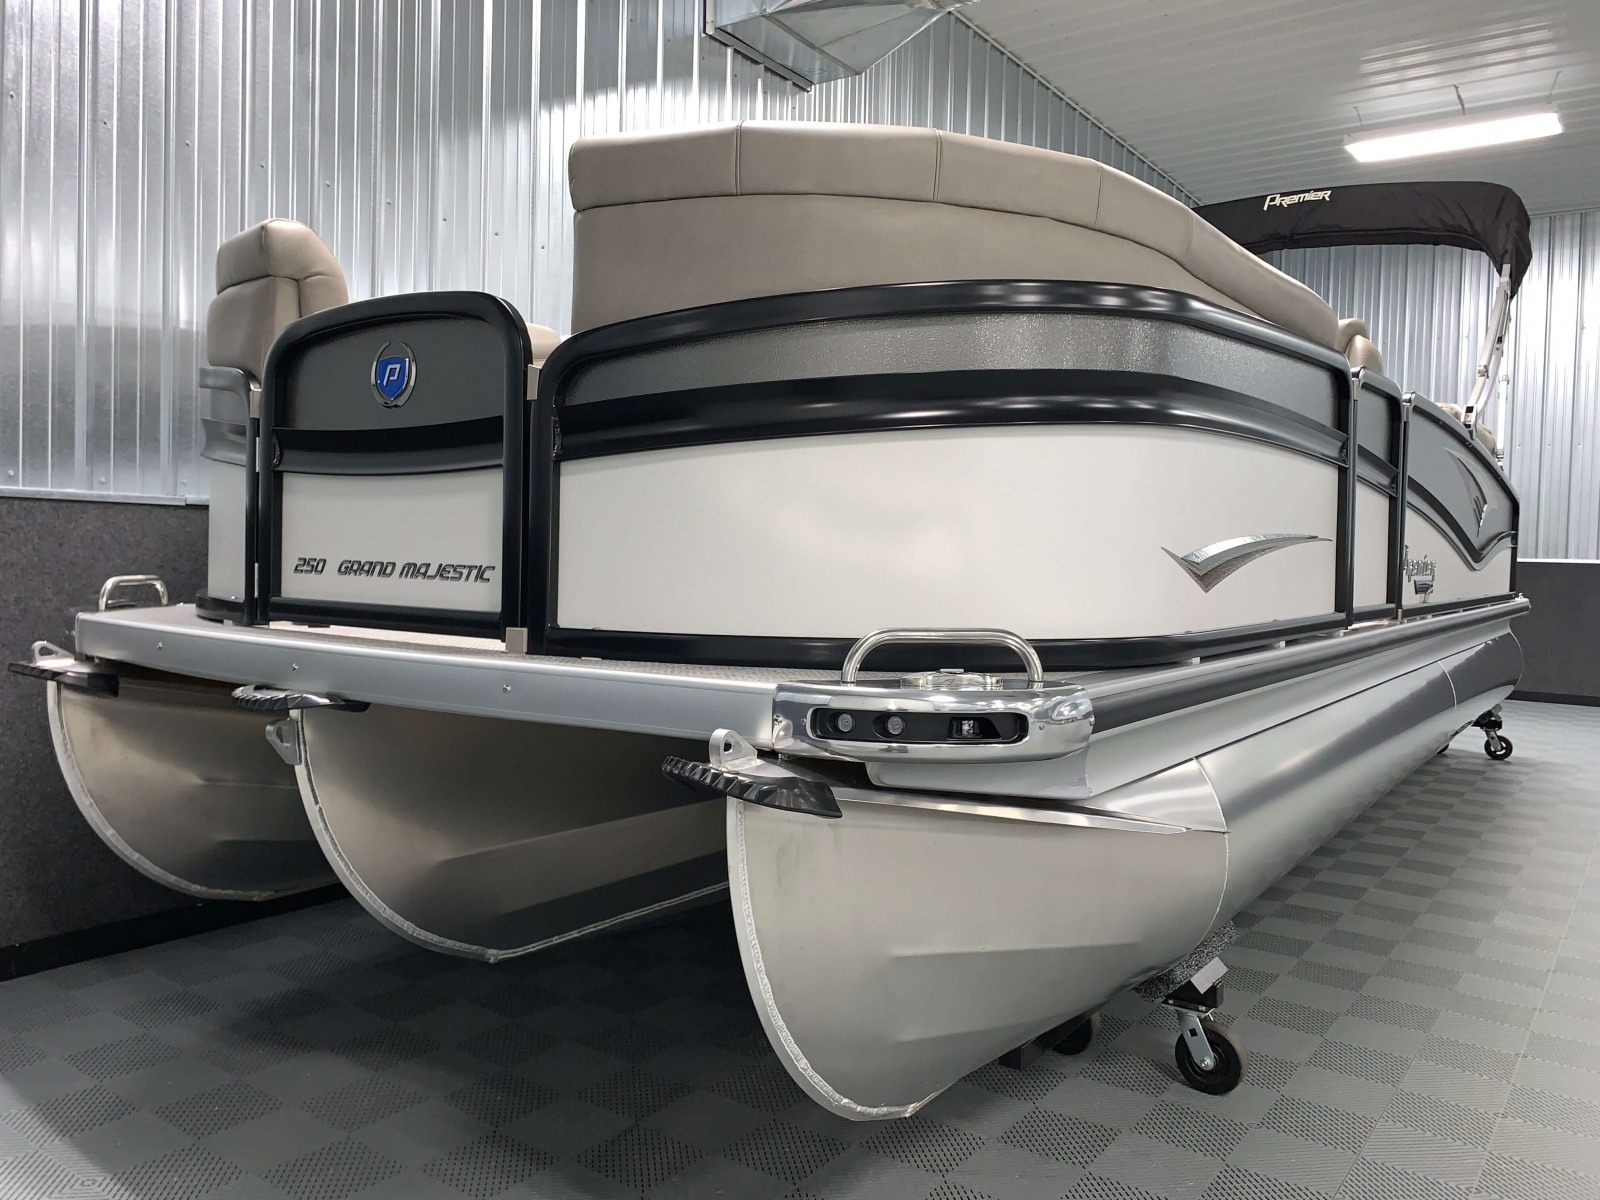 PTX Tritoon Package of the 2021 Premier 250 Grand Majestic Tritoon Boat